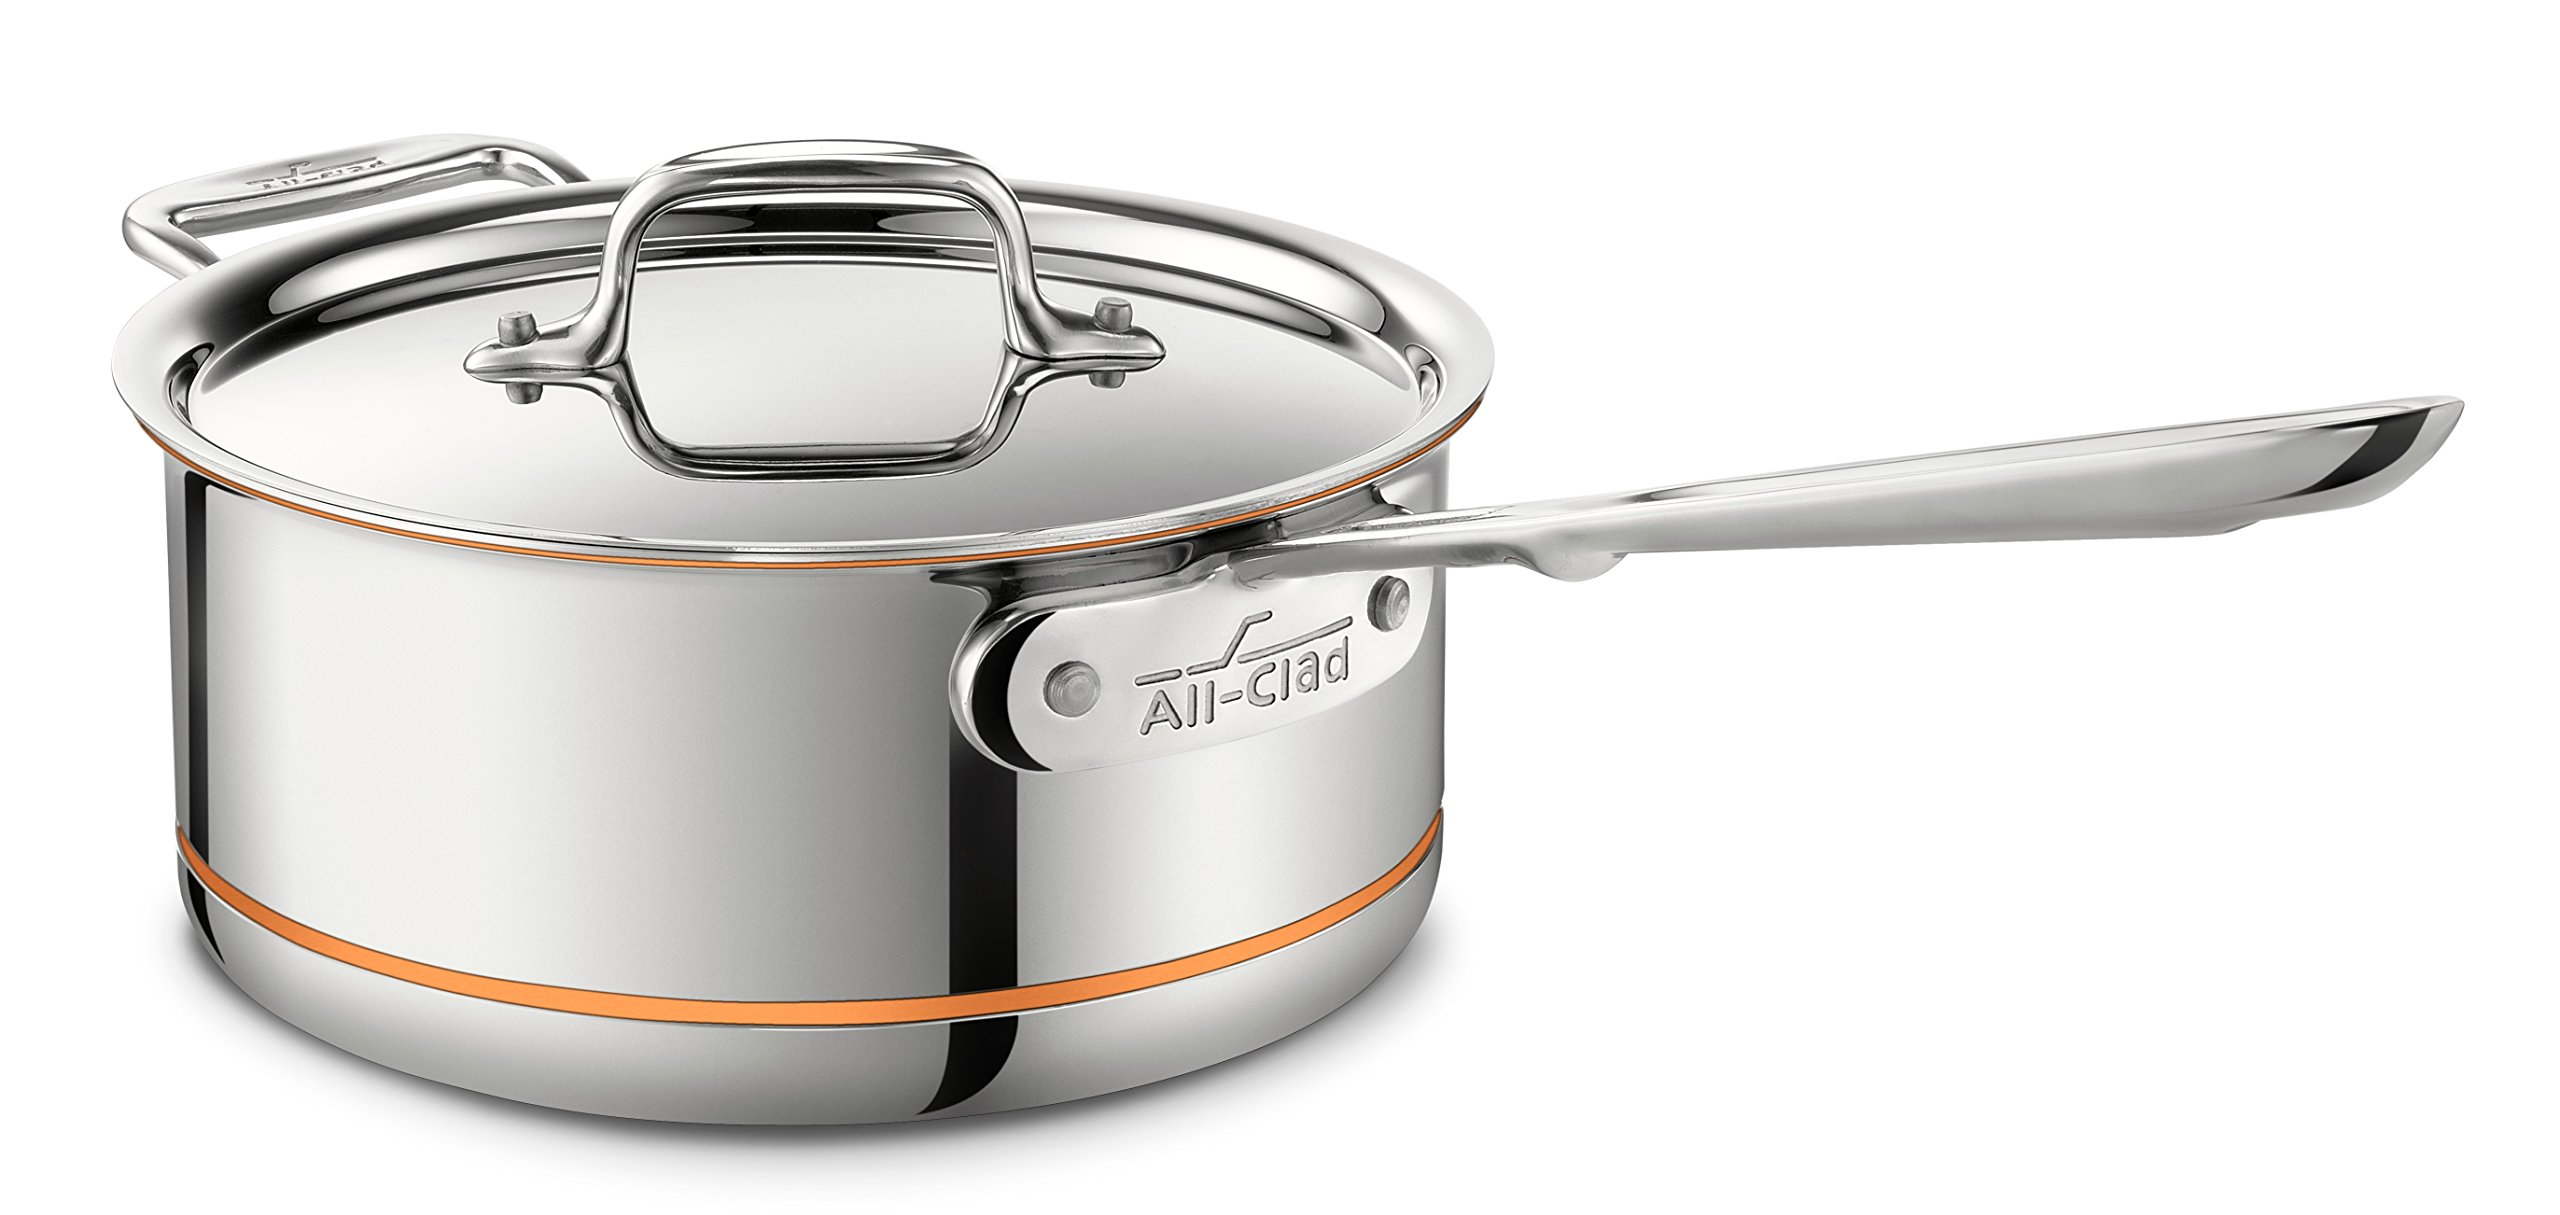 All-Clad 6201.5 SS Copper Core 5-Ply Bonded Dishwasher Safe Saucepan / Cookware, 1.5-Quart, Silver by All-Clad